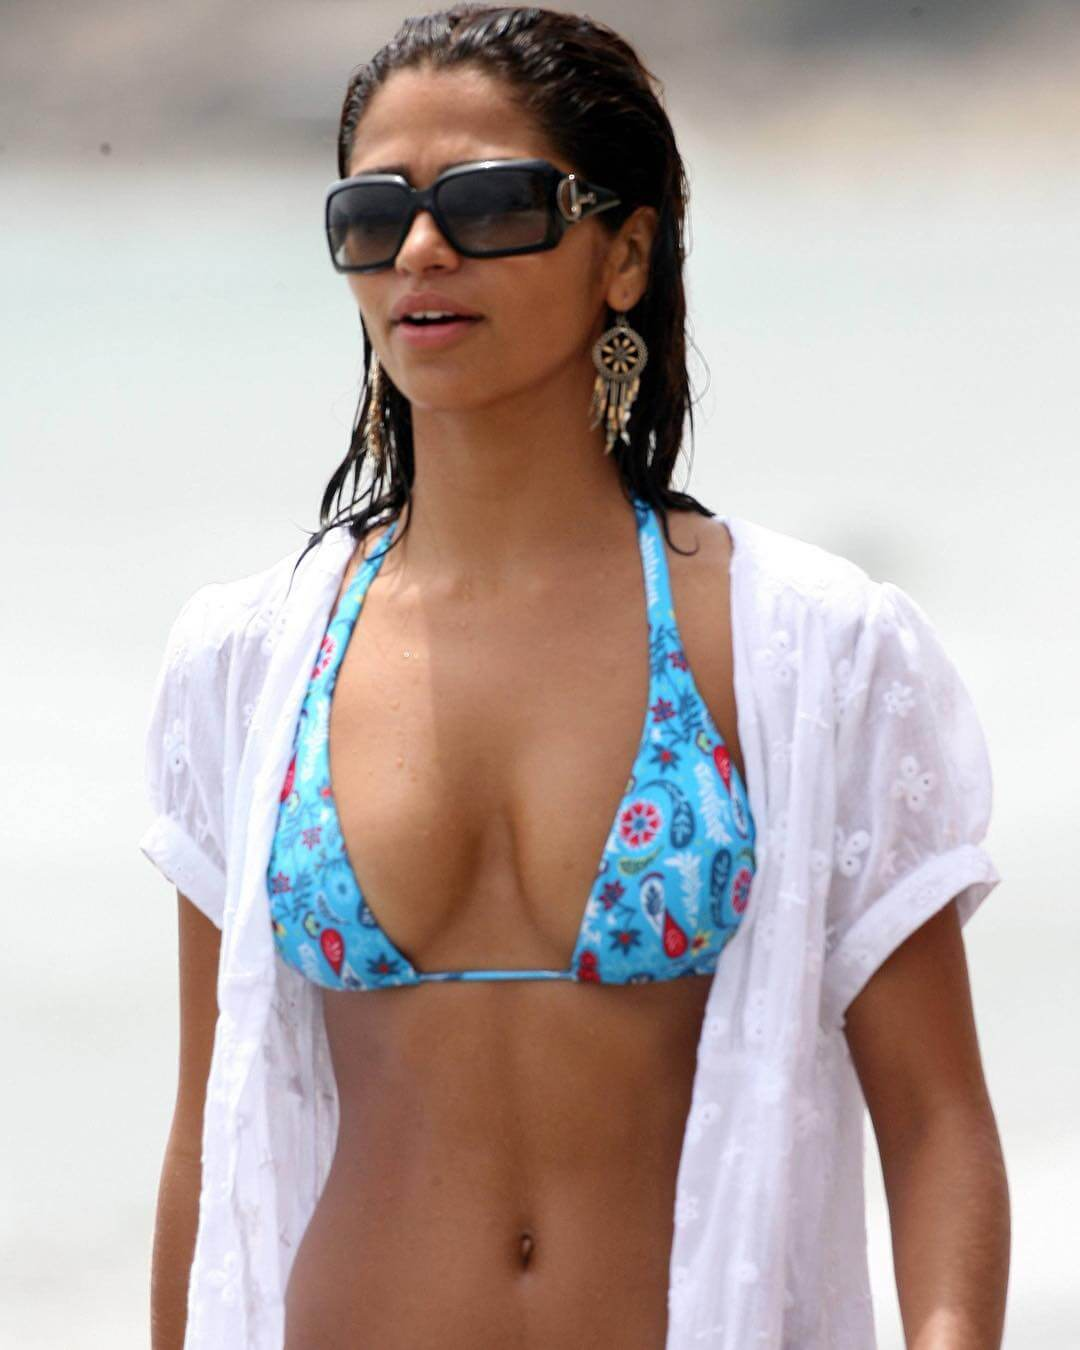 Camila Alves hot busty picture